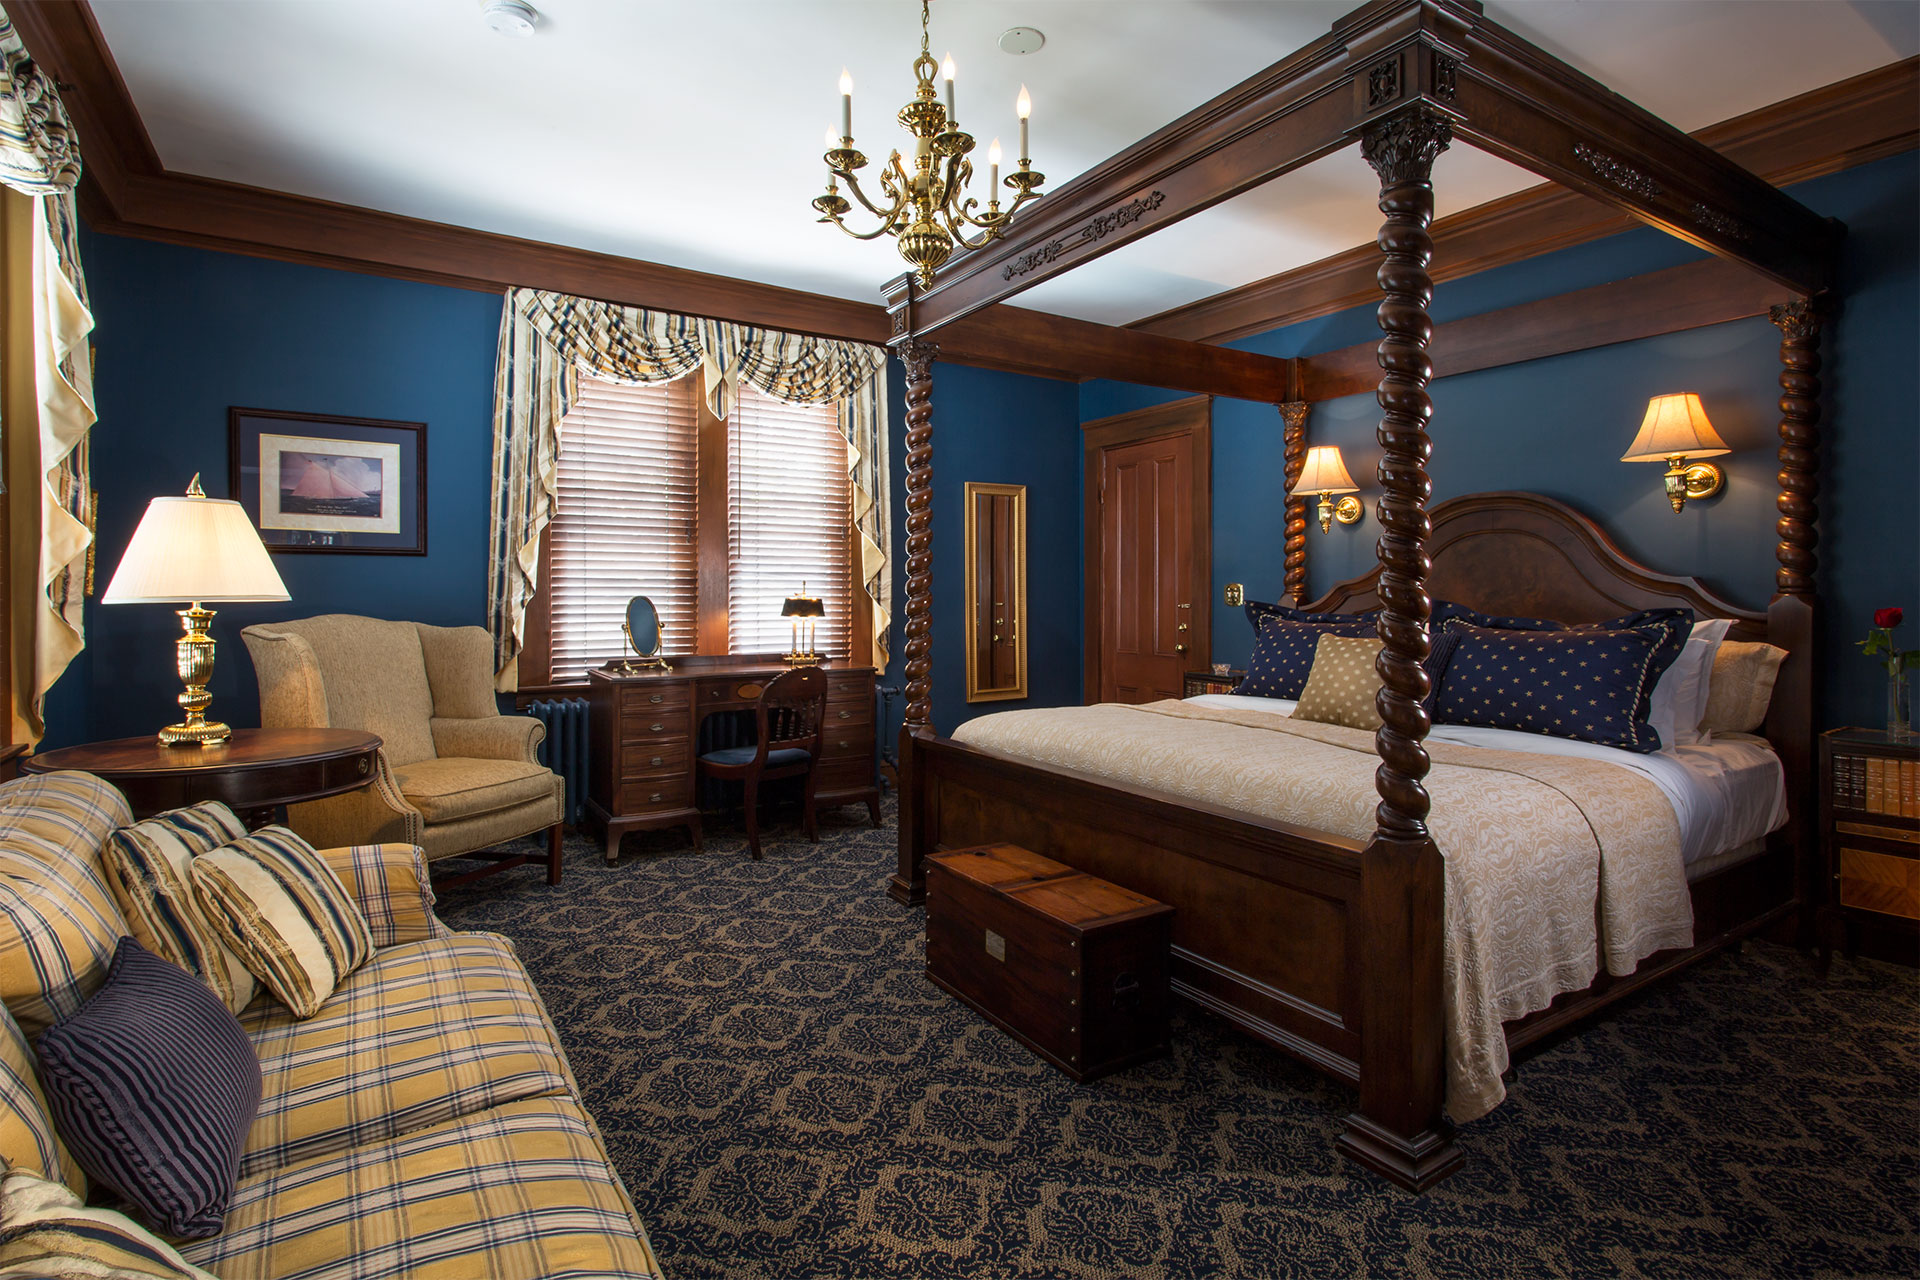 La-Farge-Perry-House_Oliver-Perry-Room.jpg